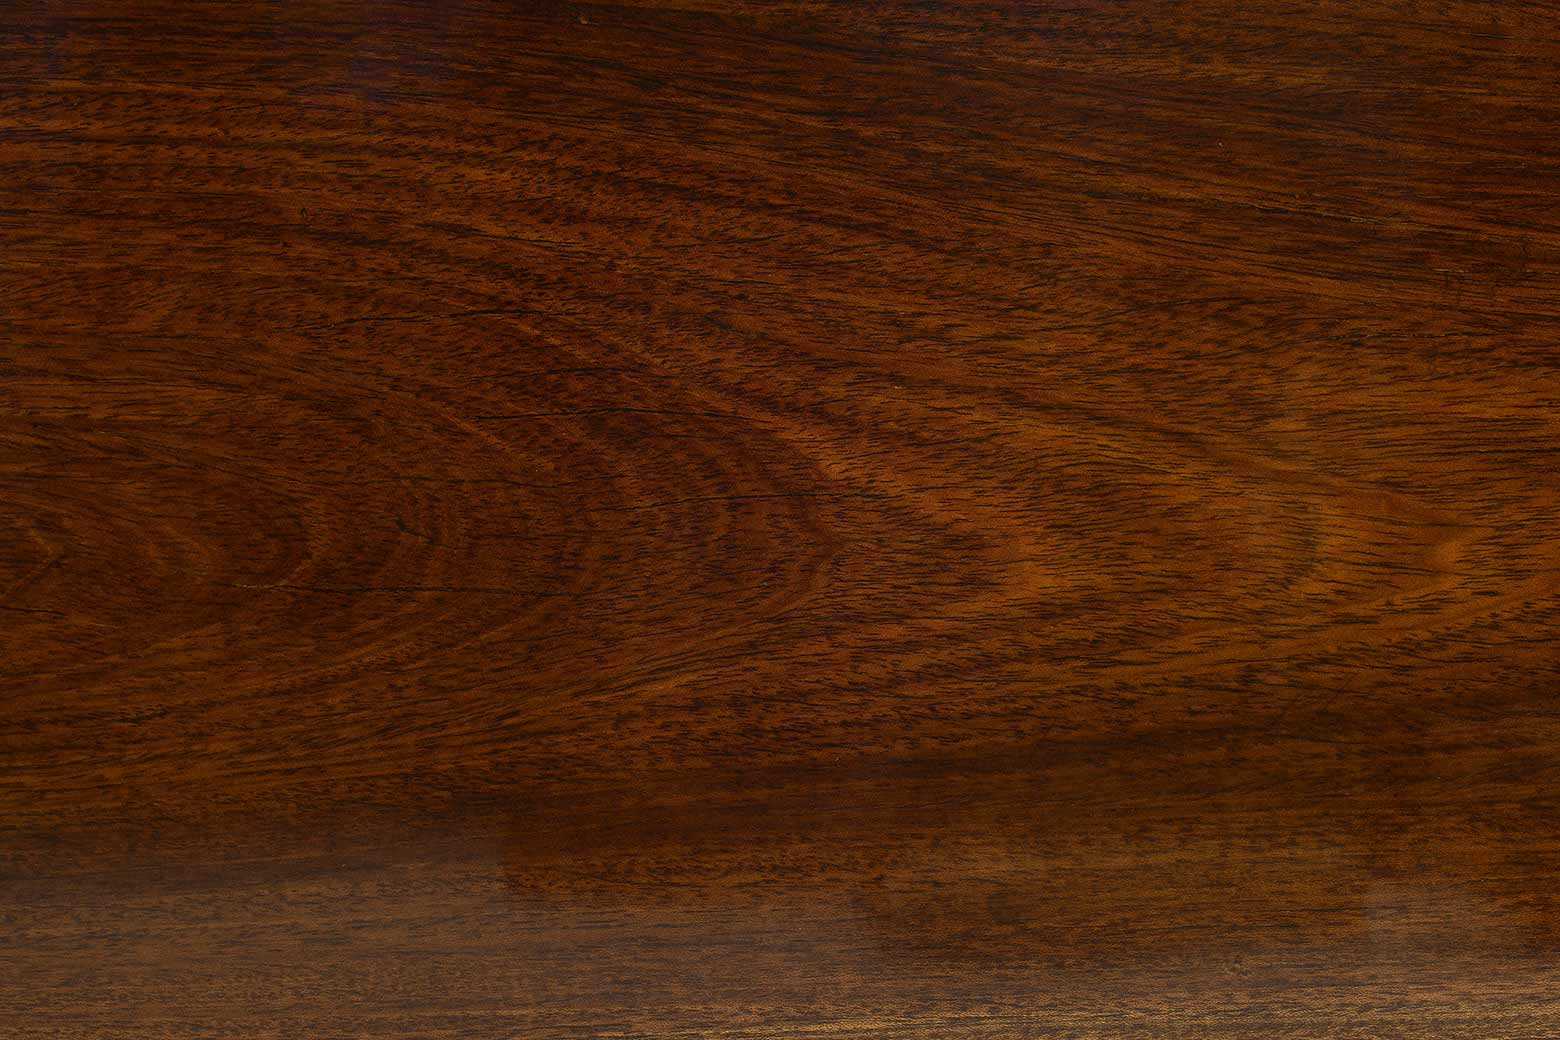 Polished Wood Background